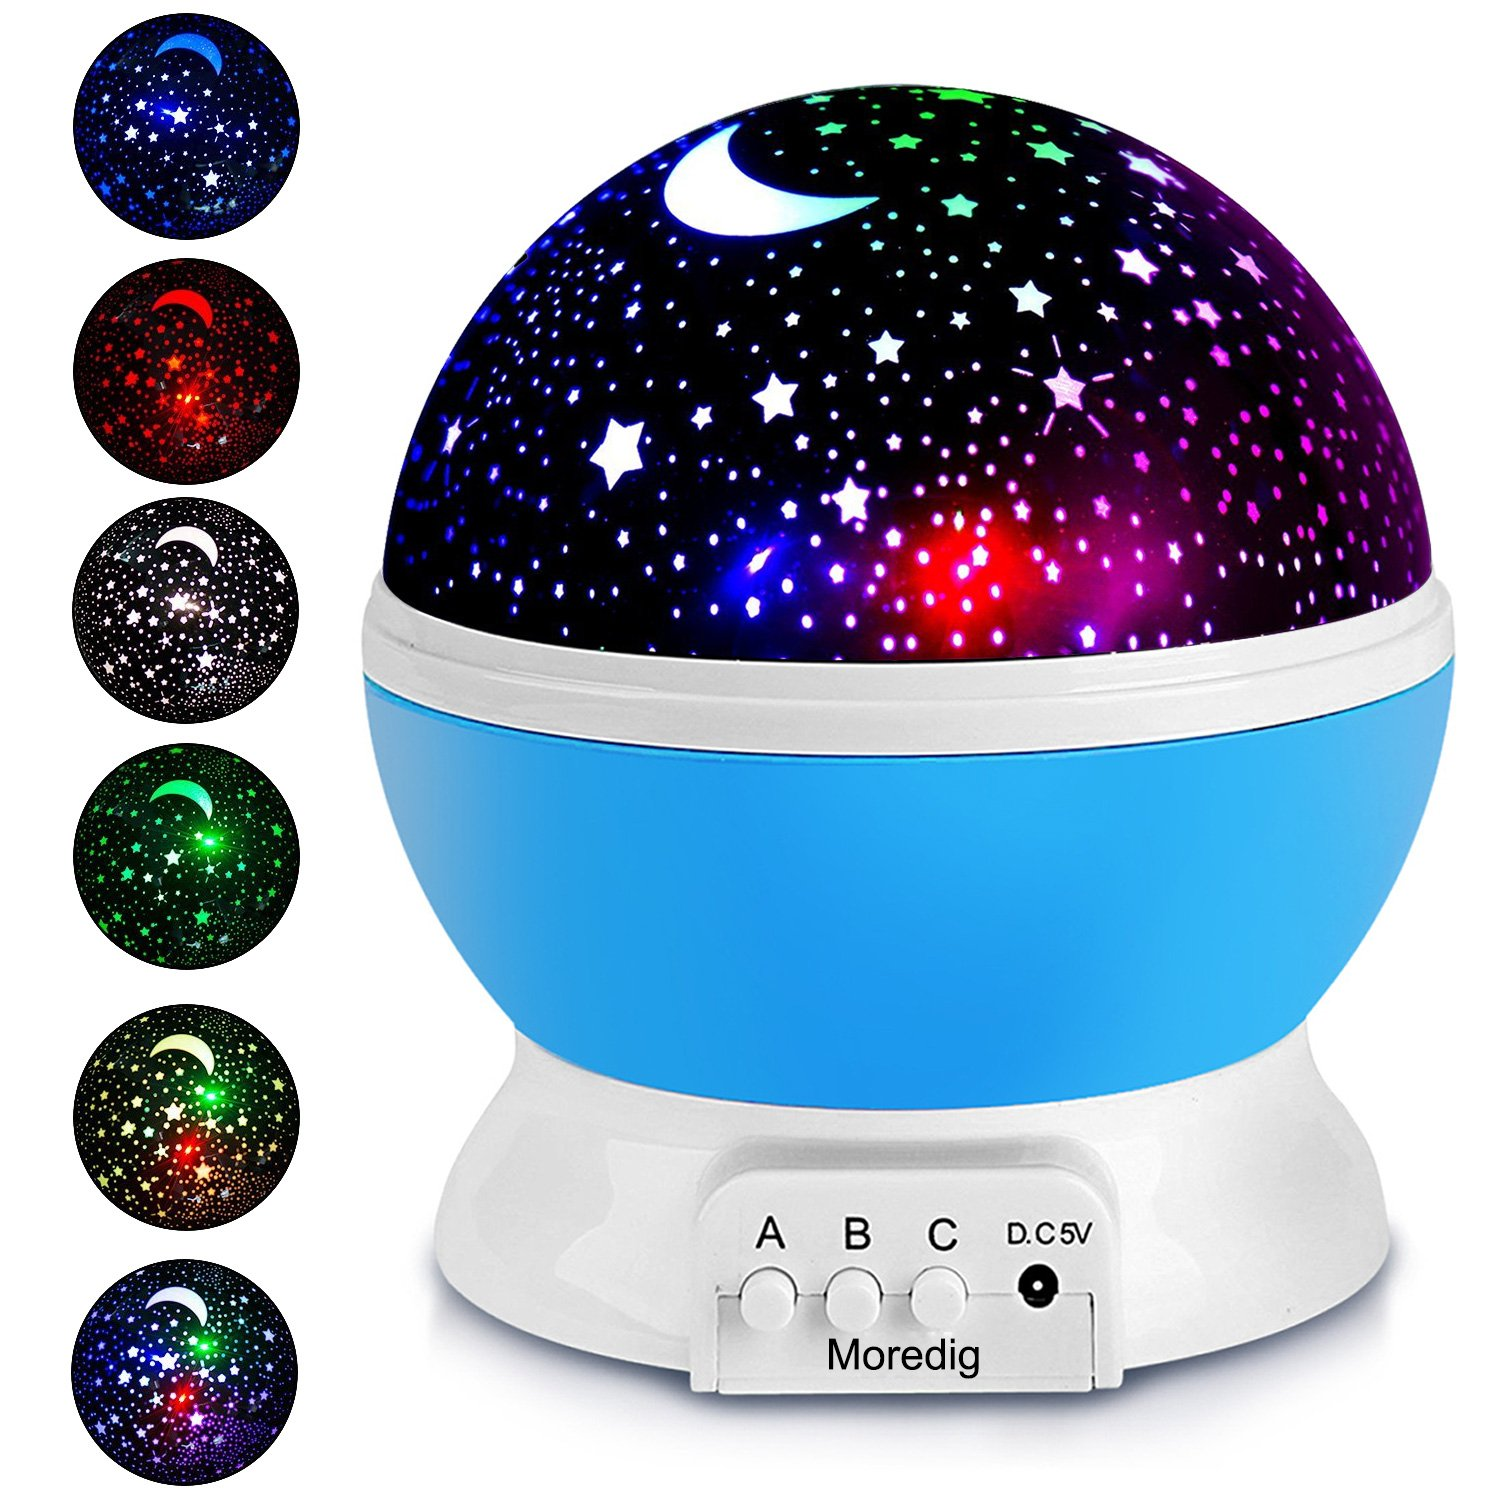 Projection Light Night Lighting Lamp Star Projector lamp with 8 Multicolor 360°Rotation with 6.5ft USB Cable,Best Lamp for Man Woman Children Kids Bedroom Blue